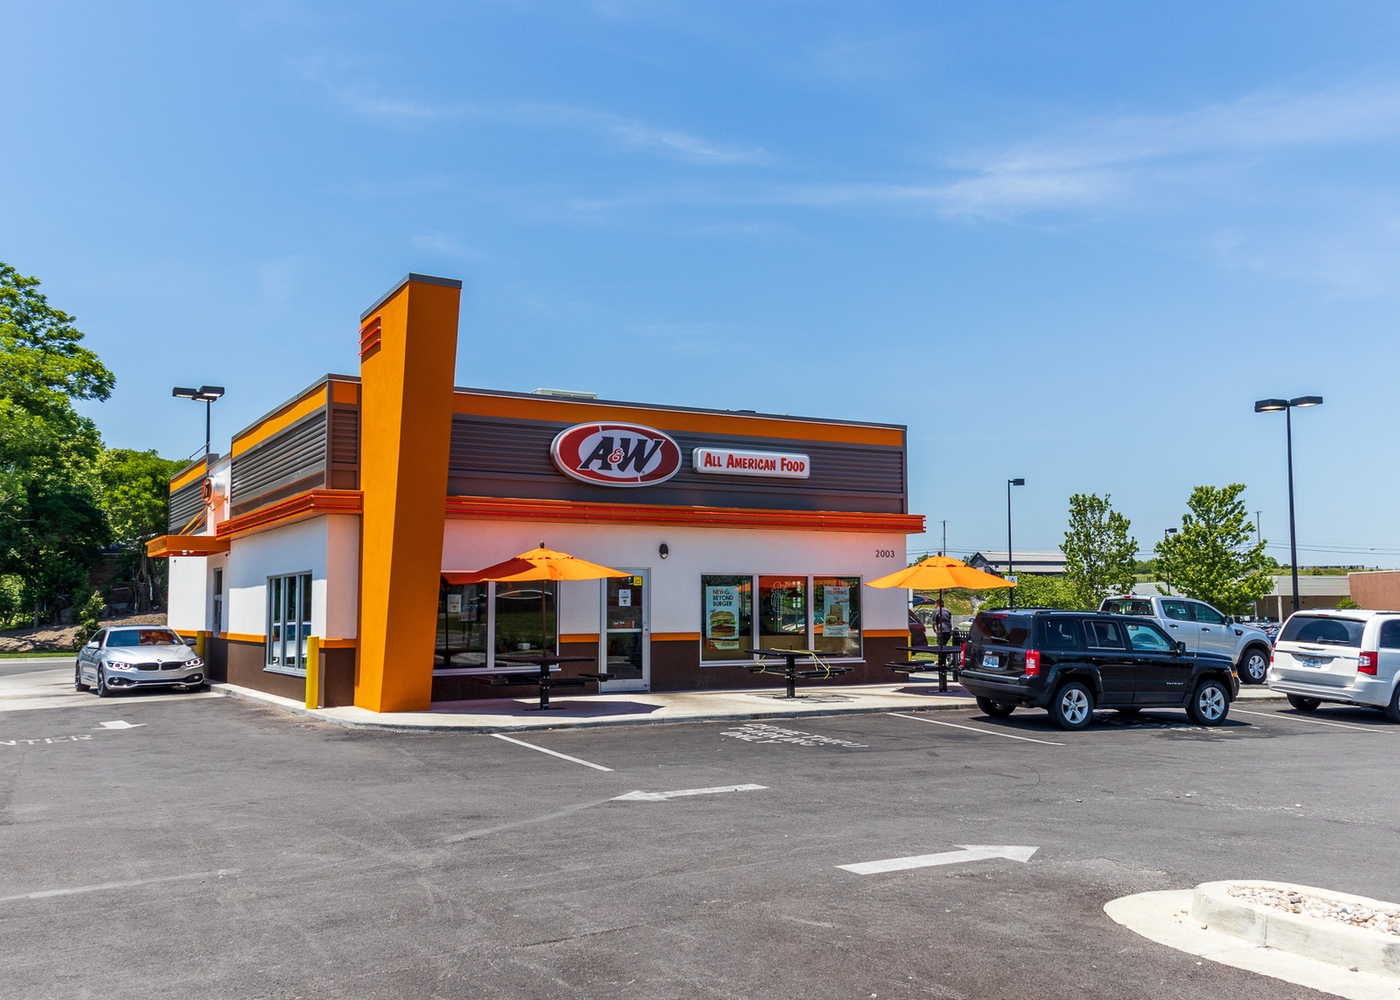 A&W Restaurant Exterior in Richmond, Kentucky. Cars are wrapped around drive-thru